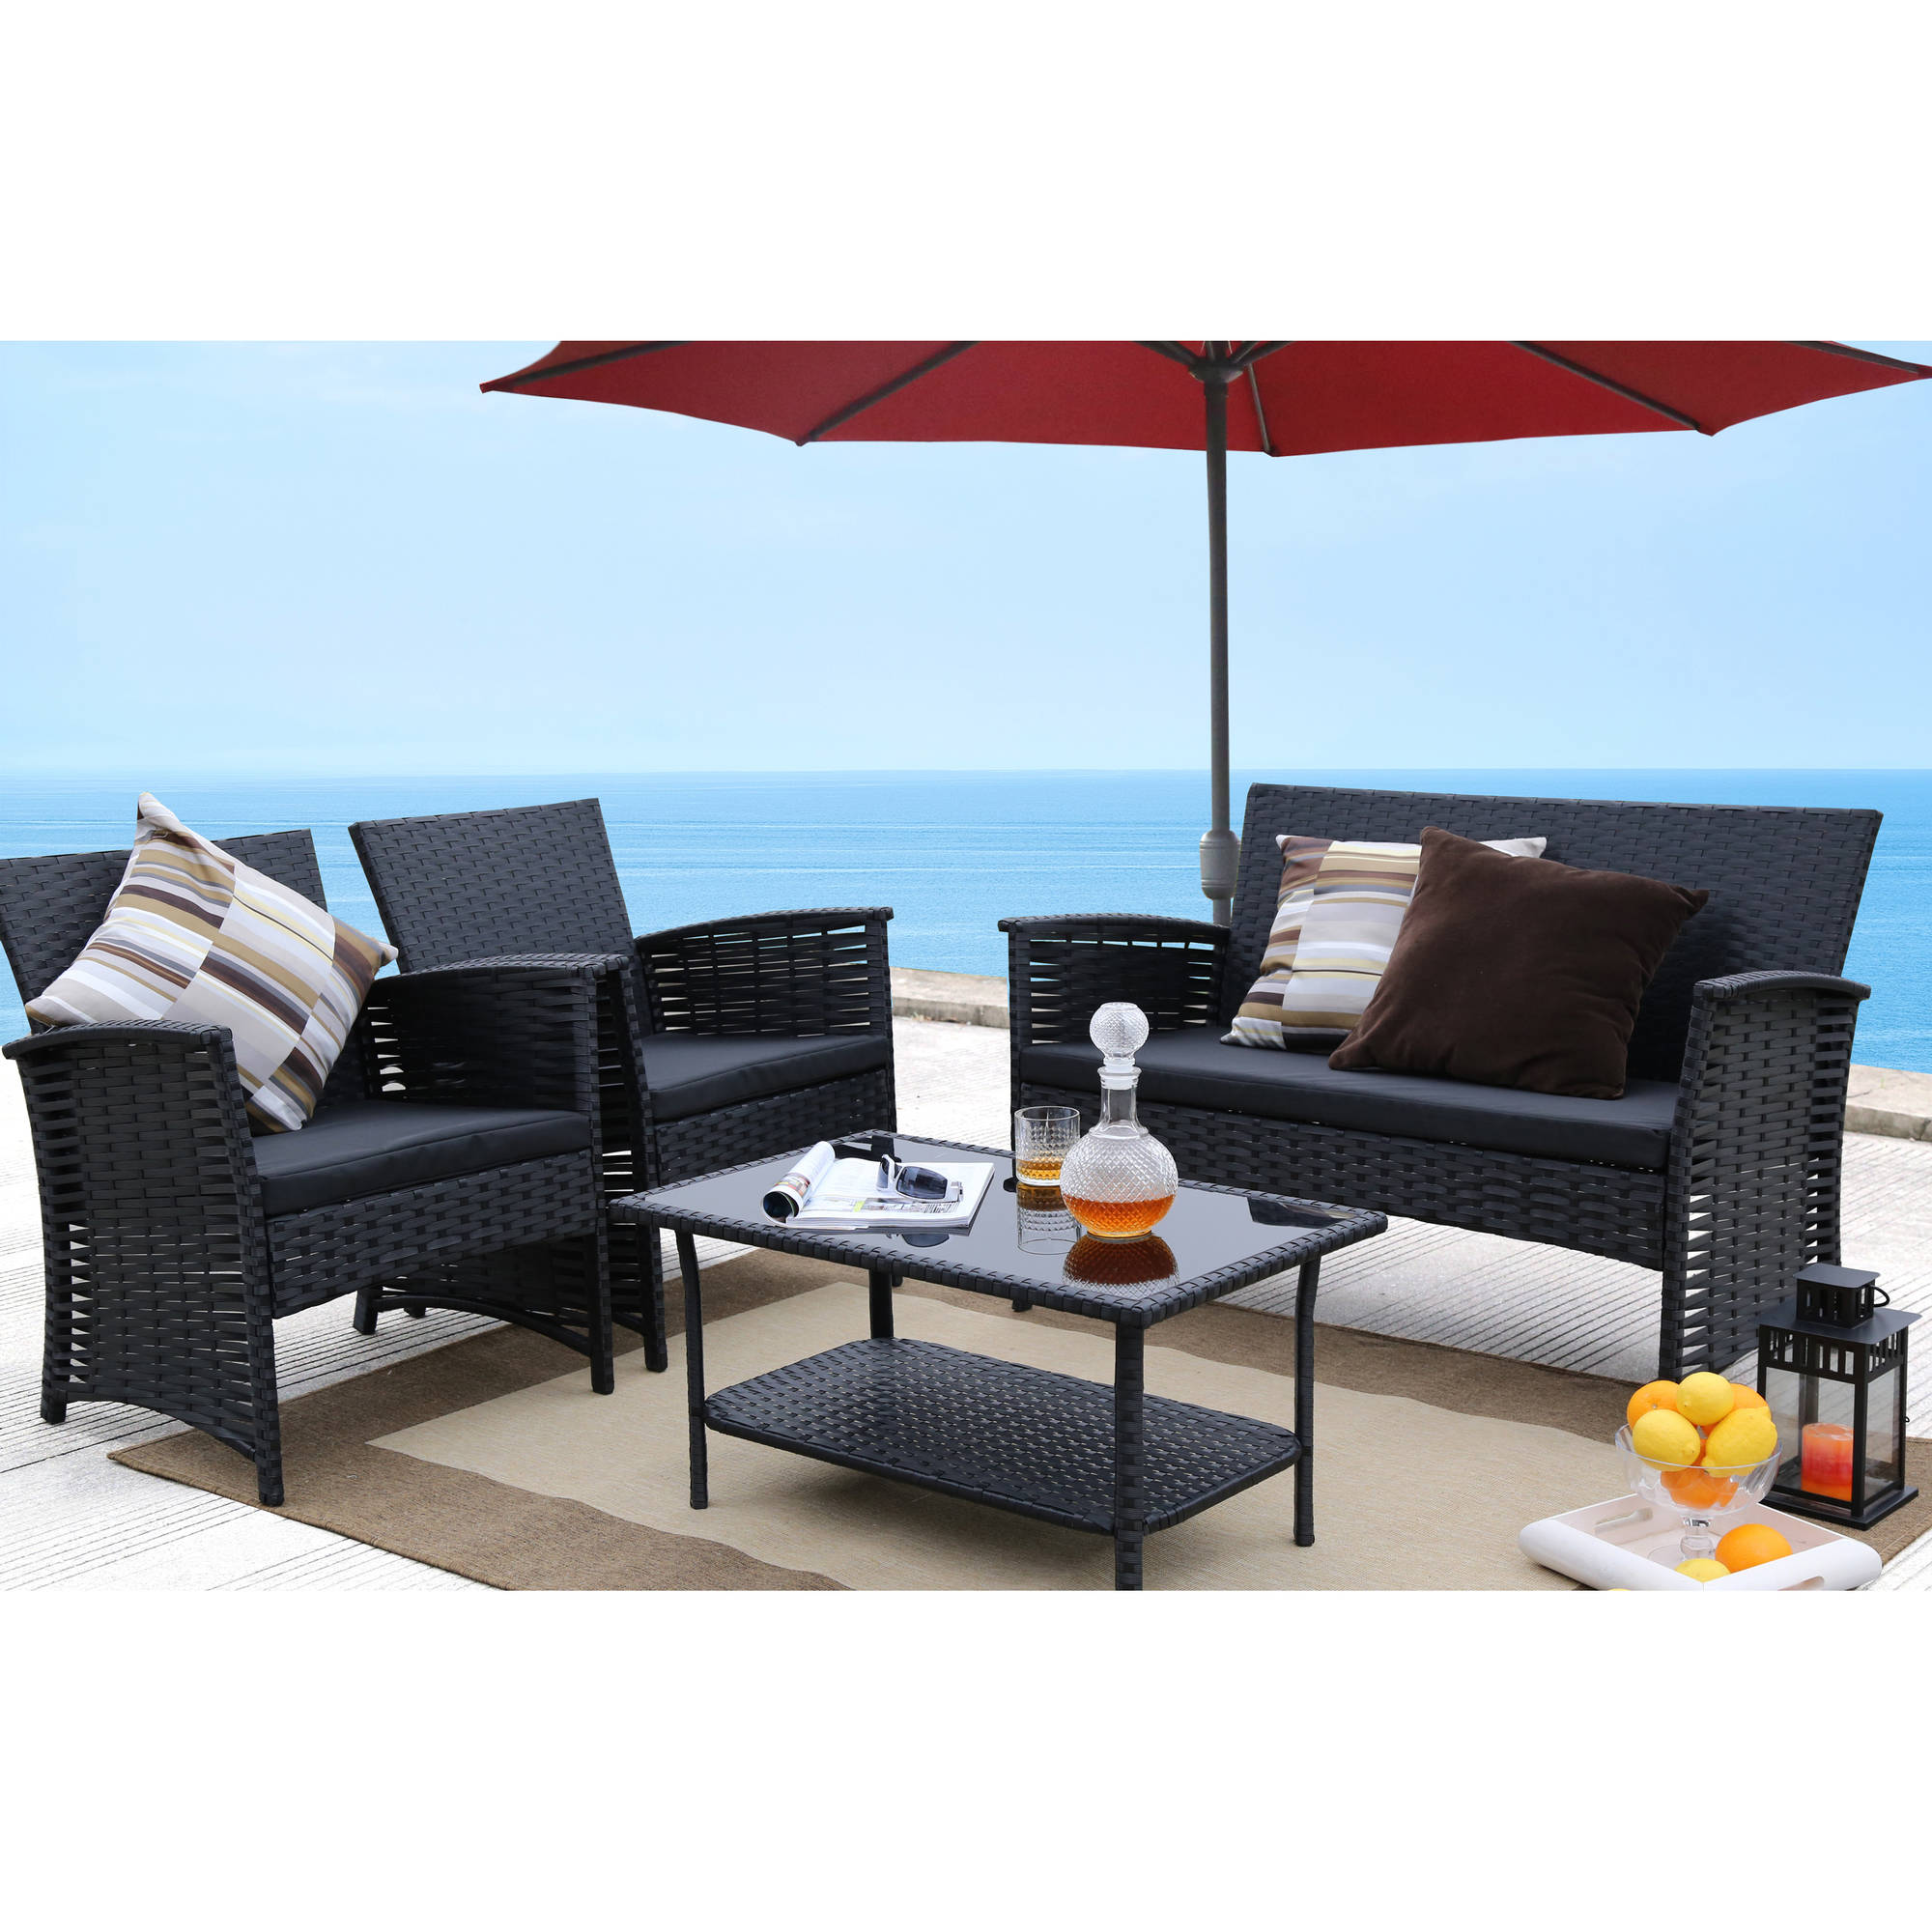 Baner Garden 4-Piece Outdoor Furniture Complete Set, Black by Caesar Hardware